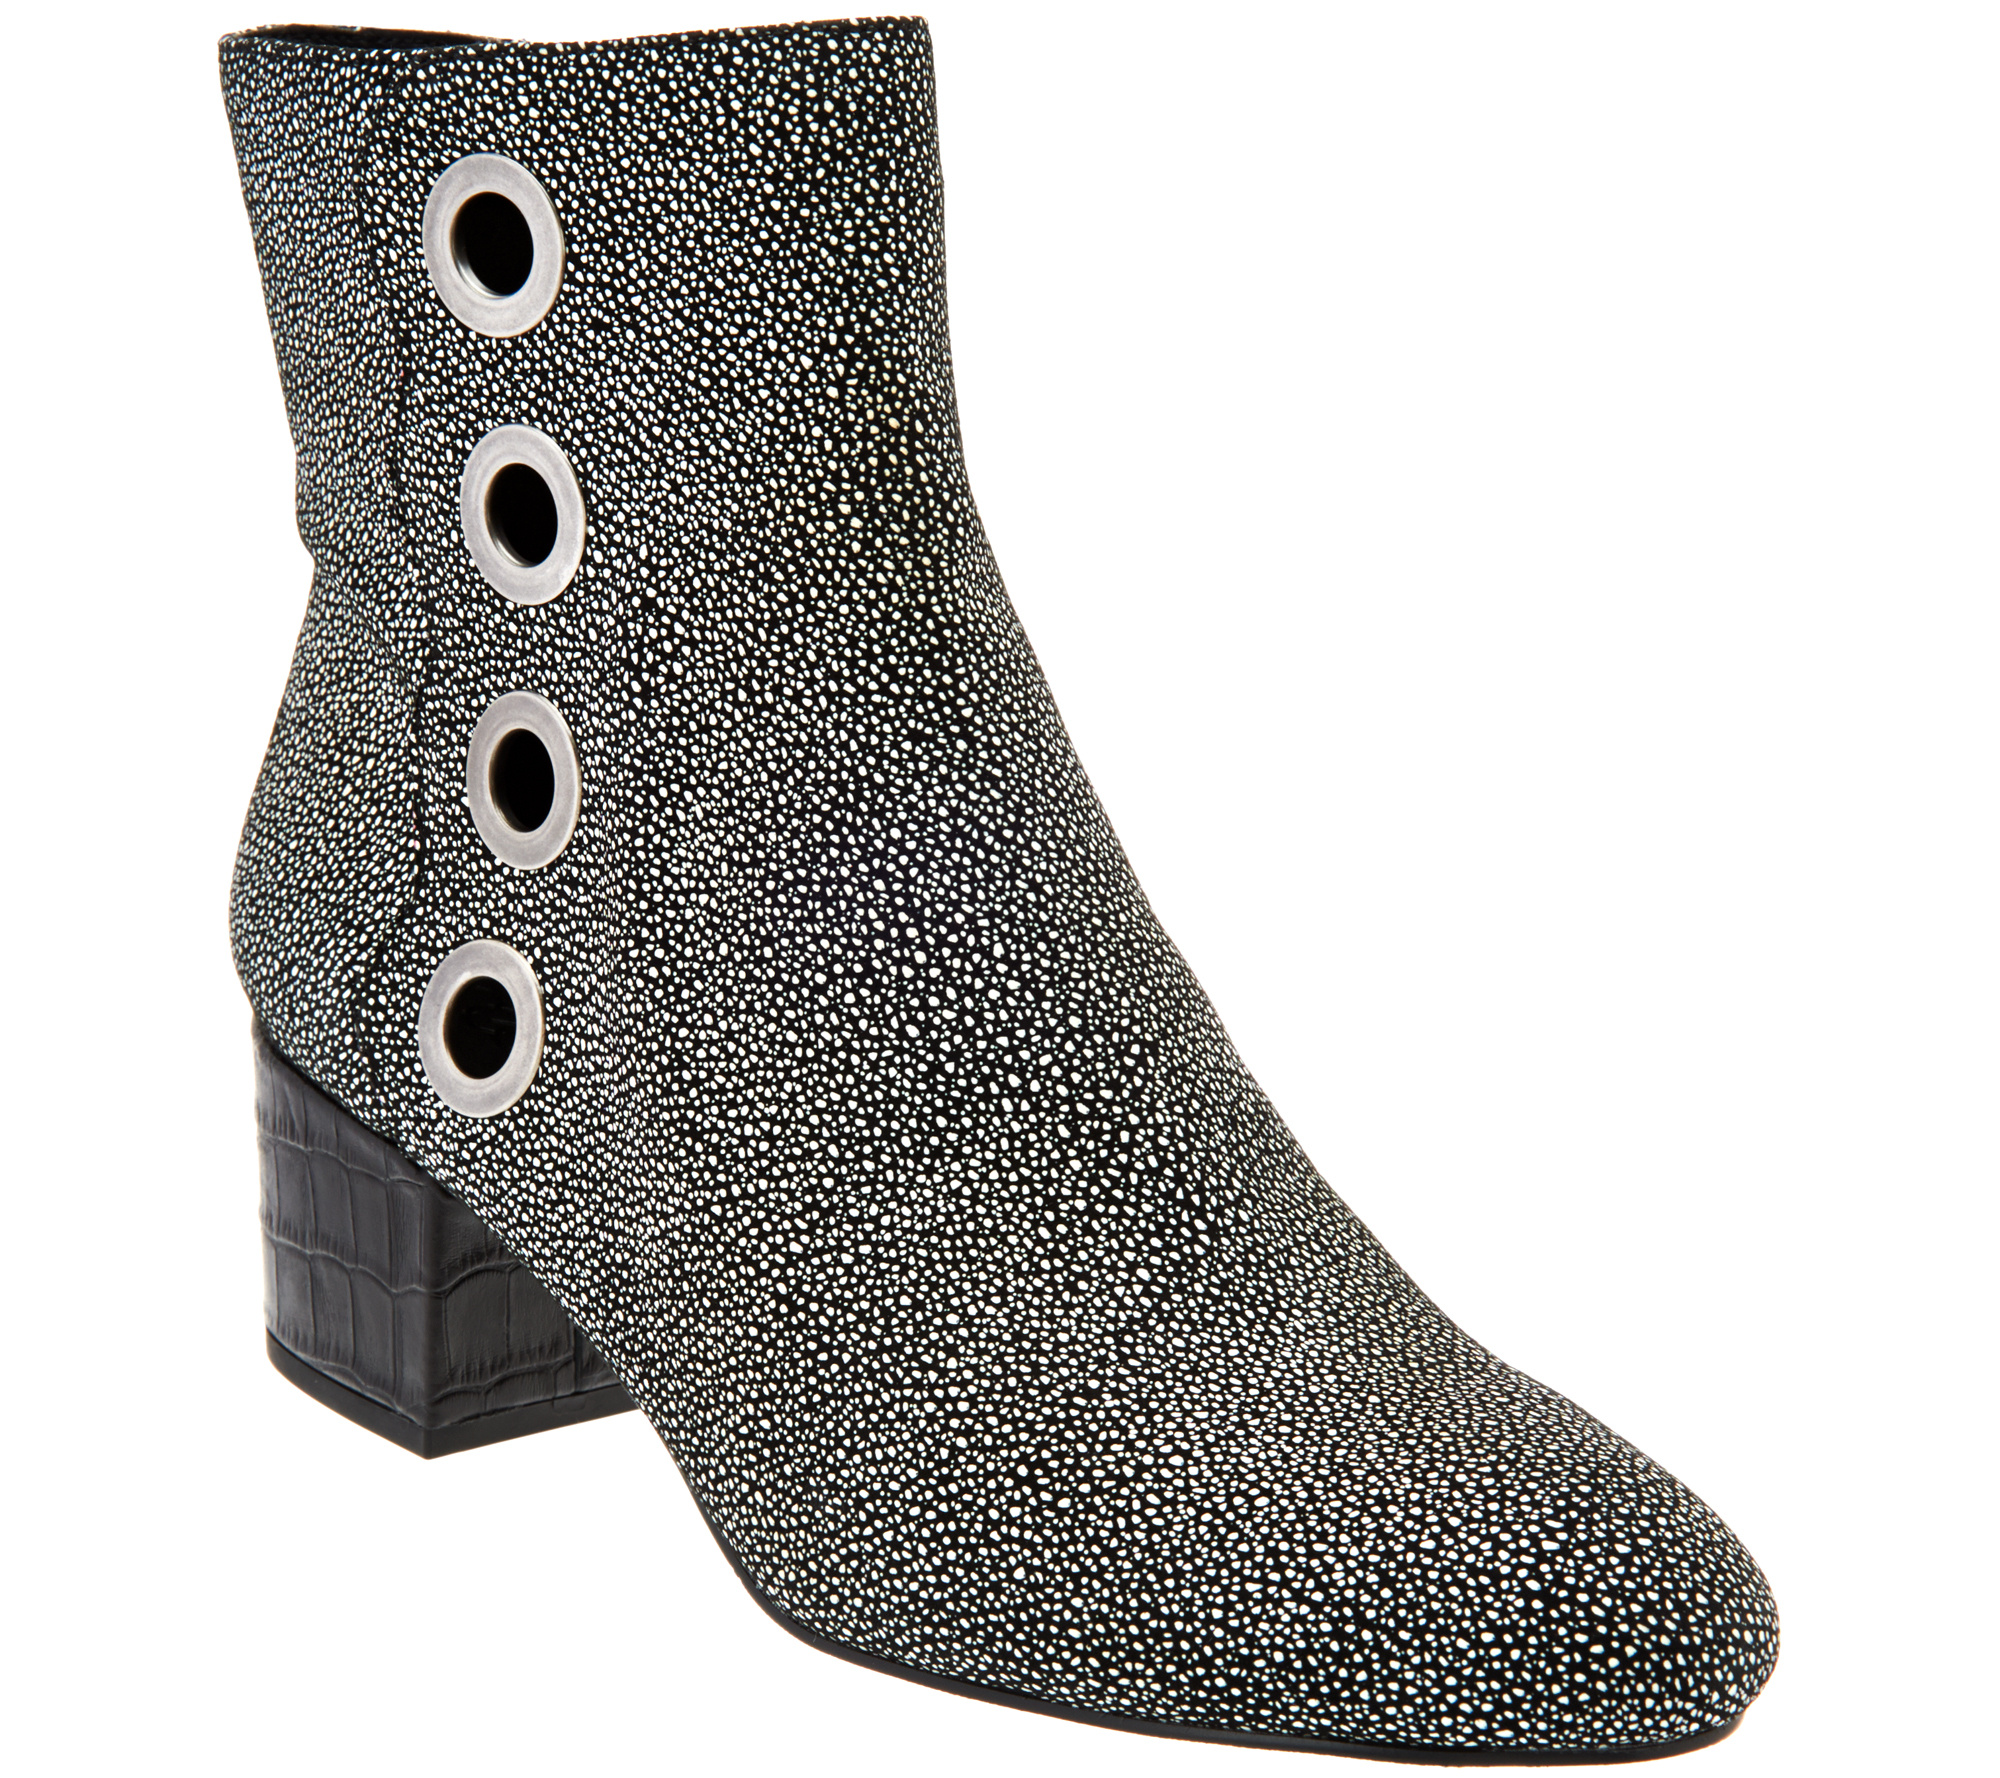 LOGO by Lori Goldstein Ankle Boots with Grommet Detail